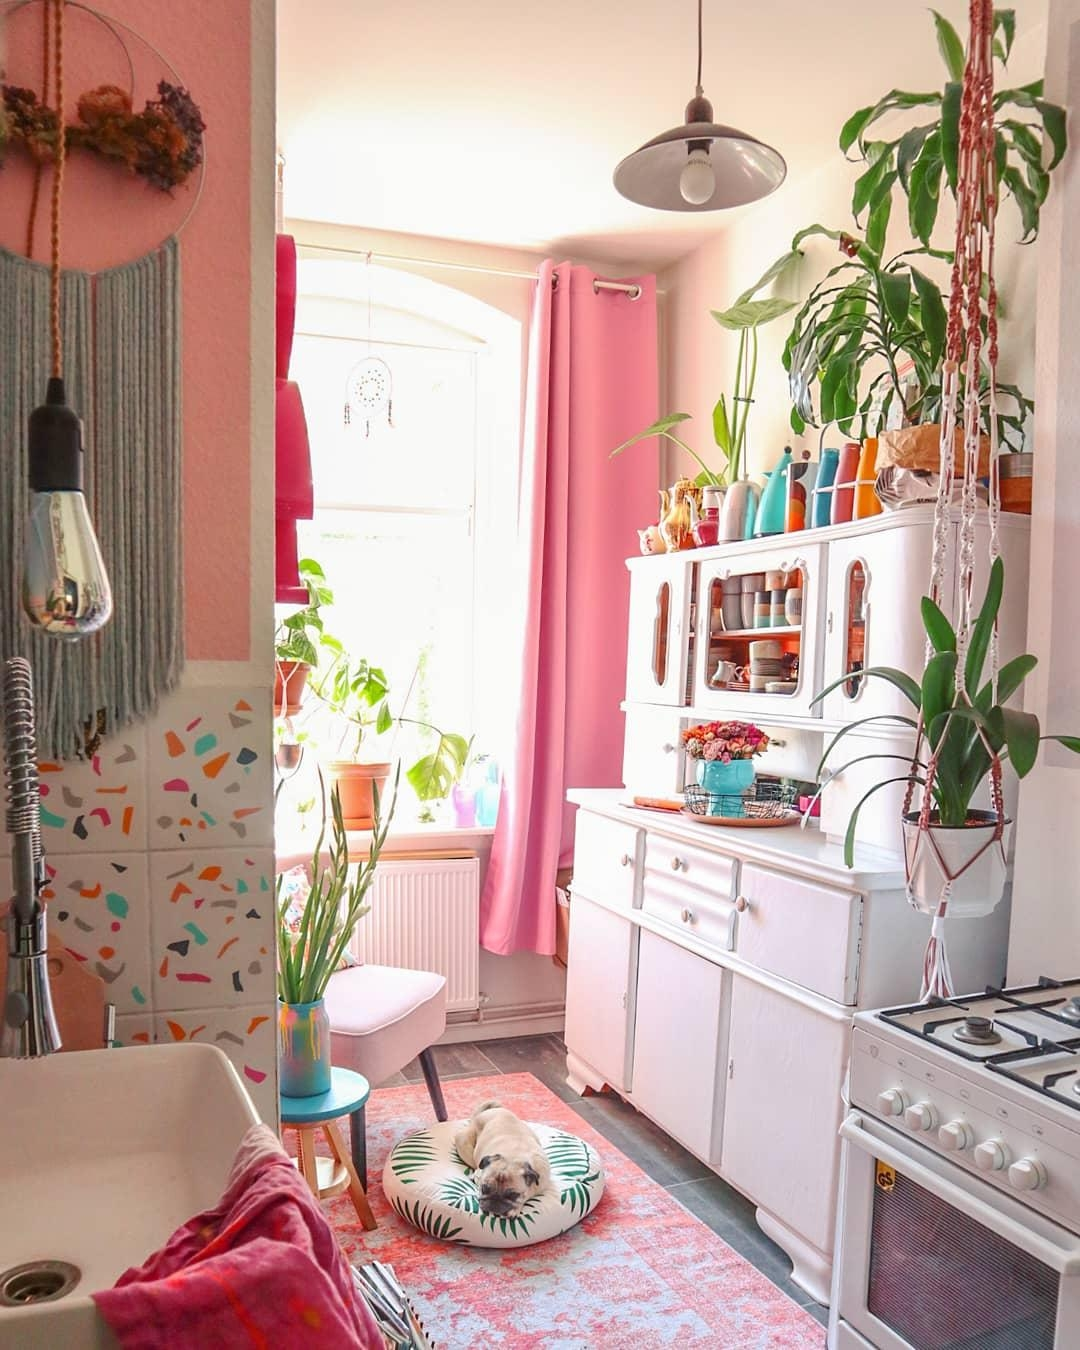 #kitchen #tinykitchen #volorful #pinklover